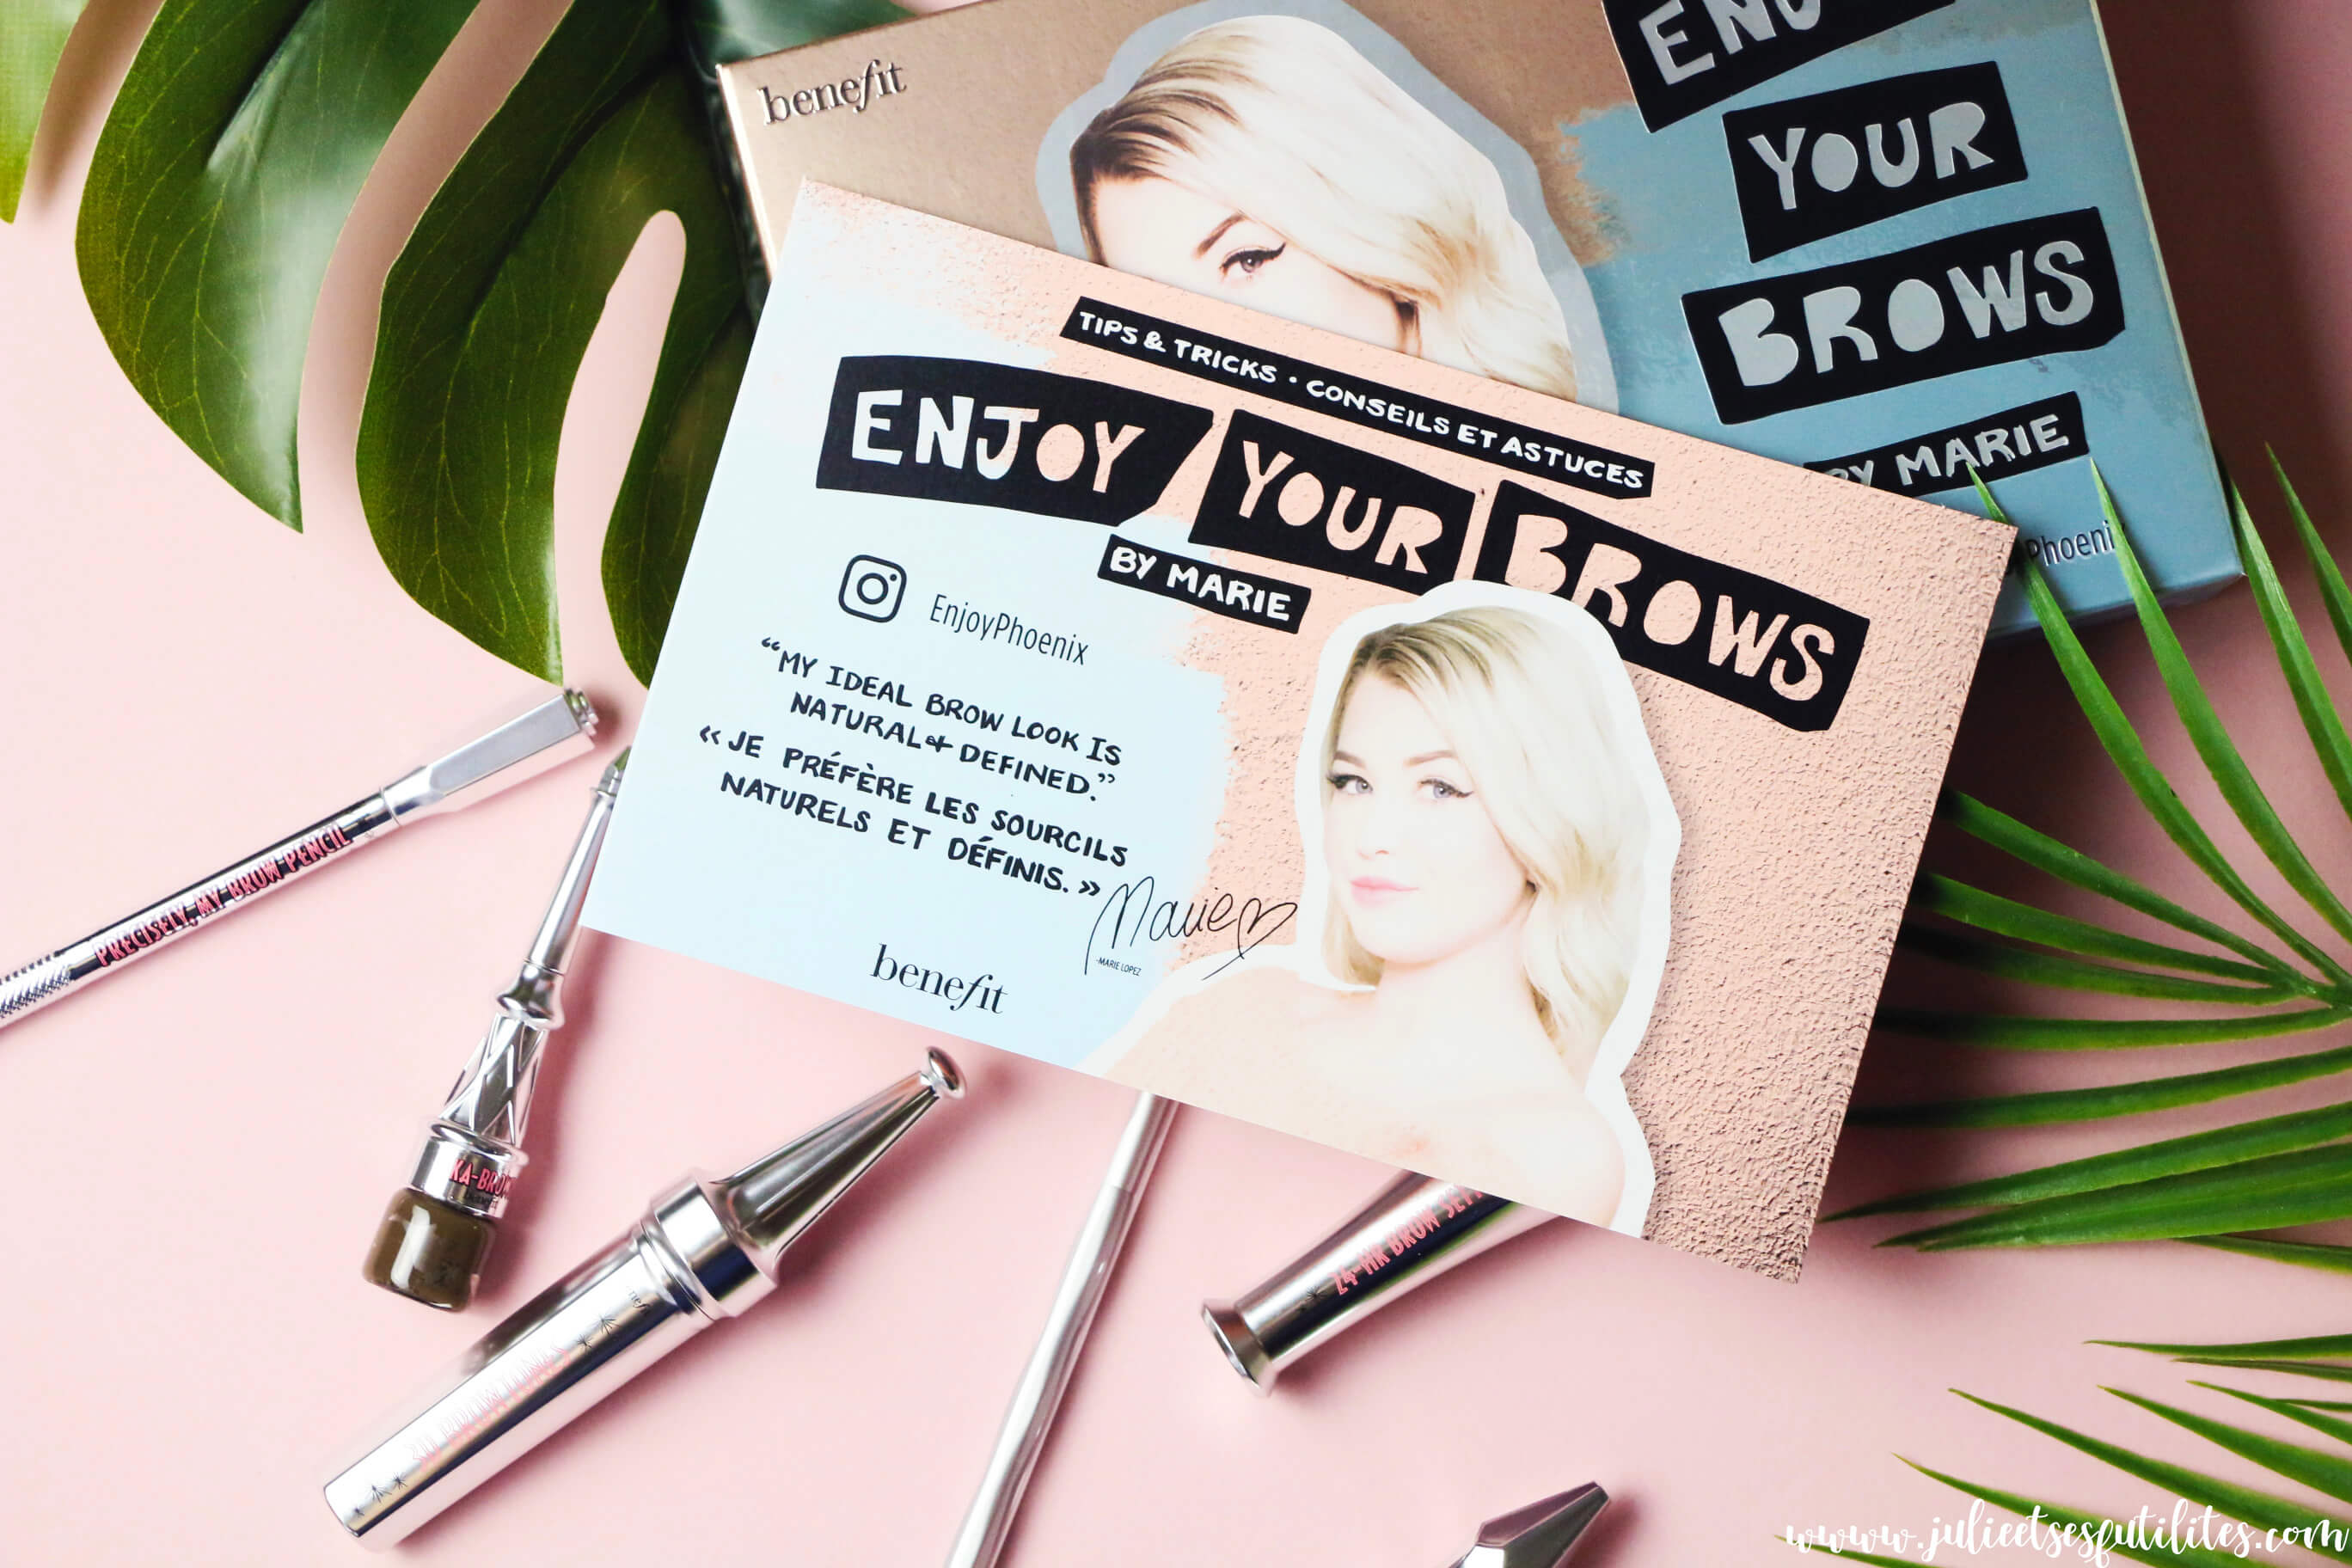 kit-enjoy-your-brows-benefit